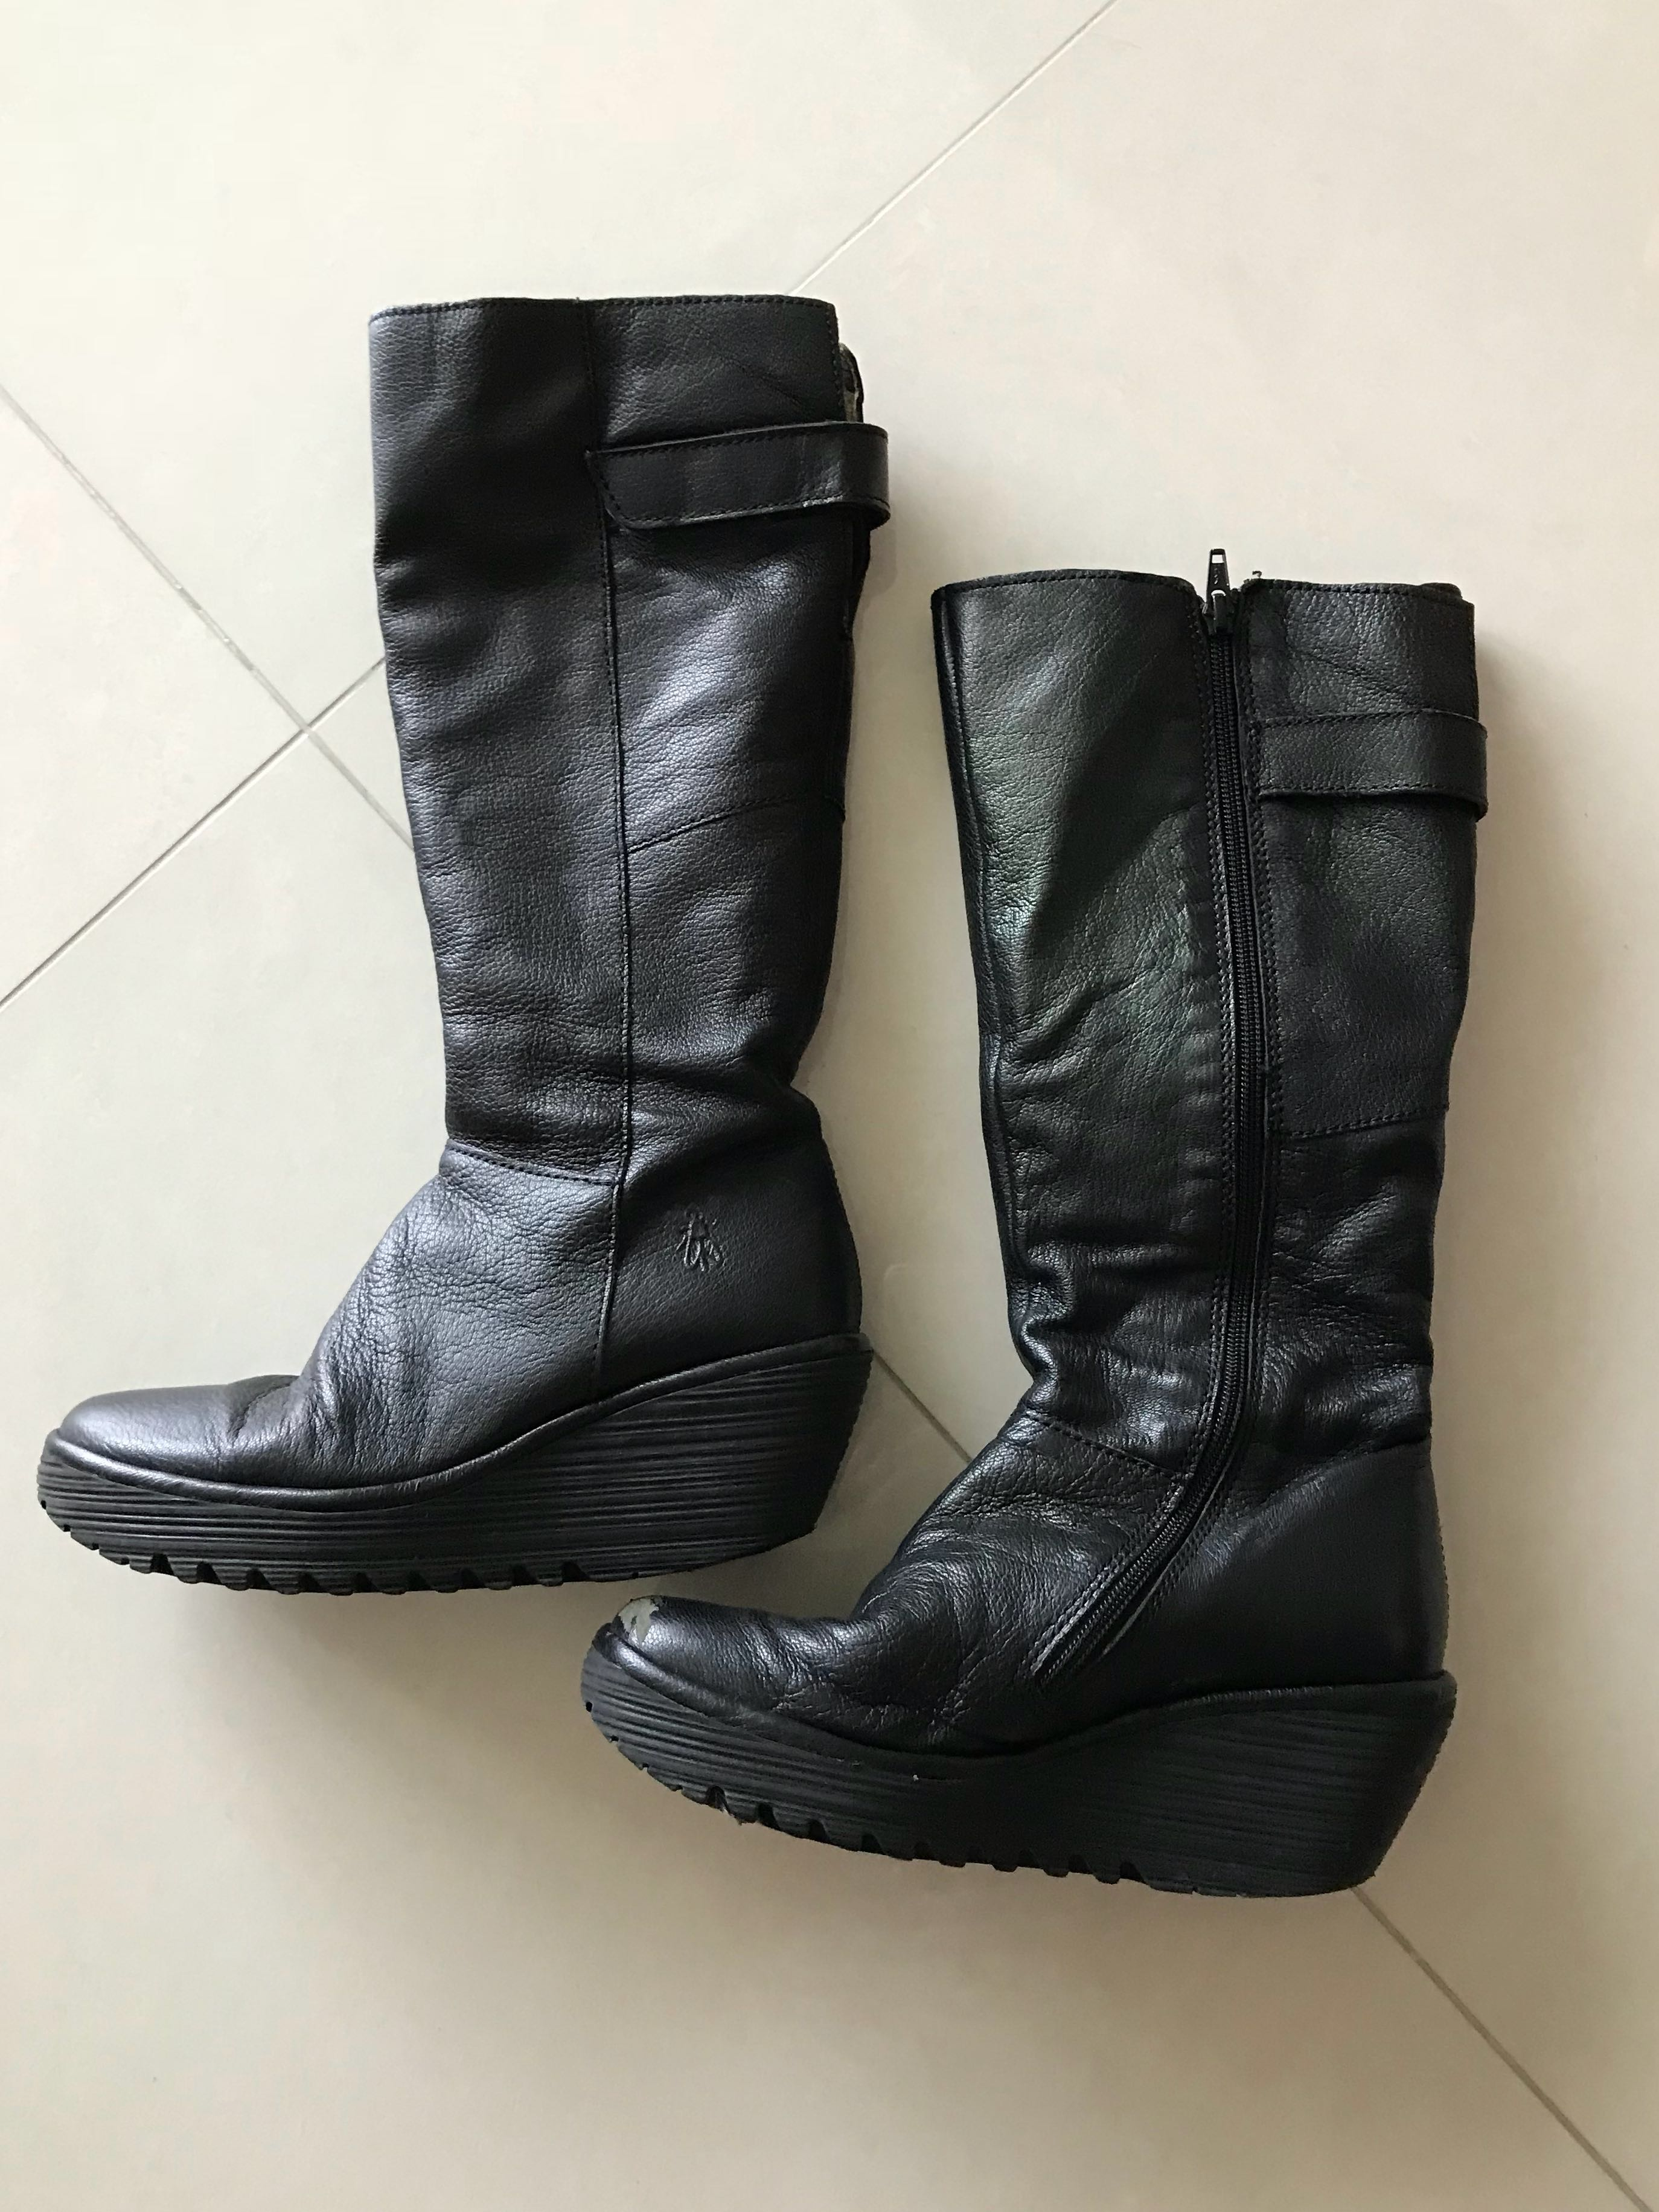 ada906d66cee Limited Edition Fly London Real Leather High Length Boots, Women's ...